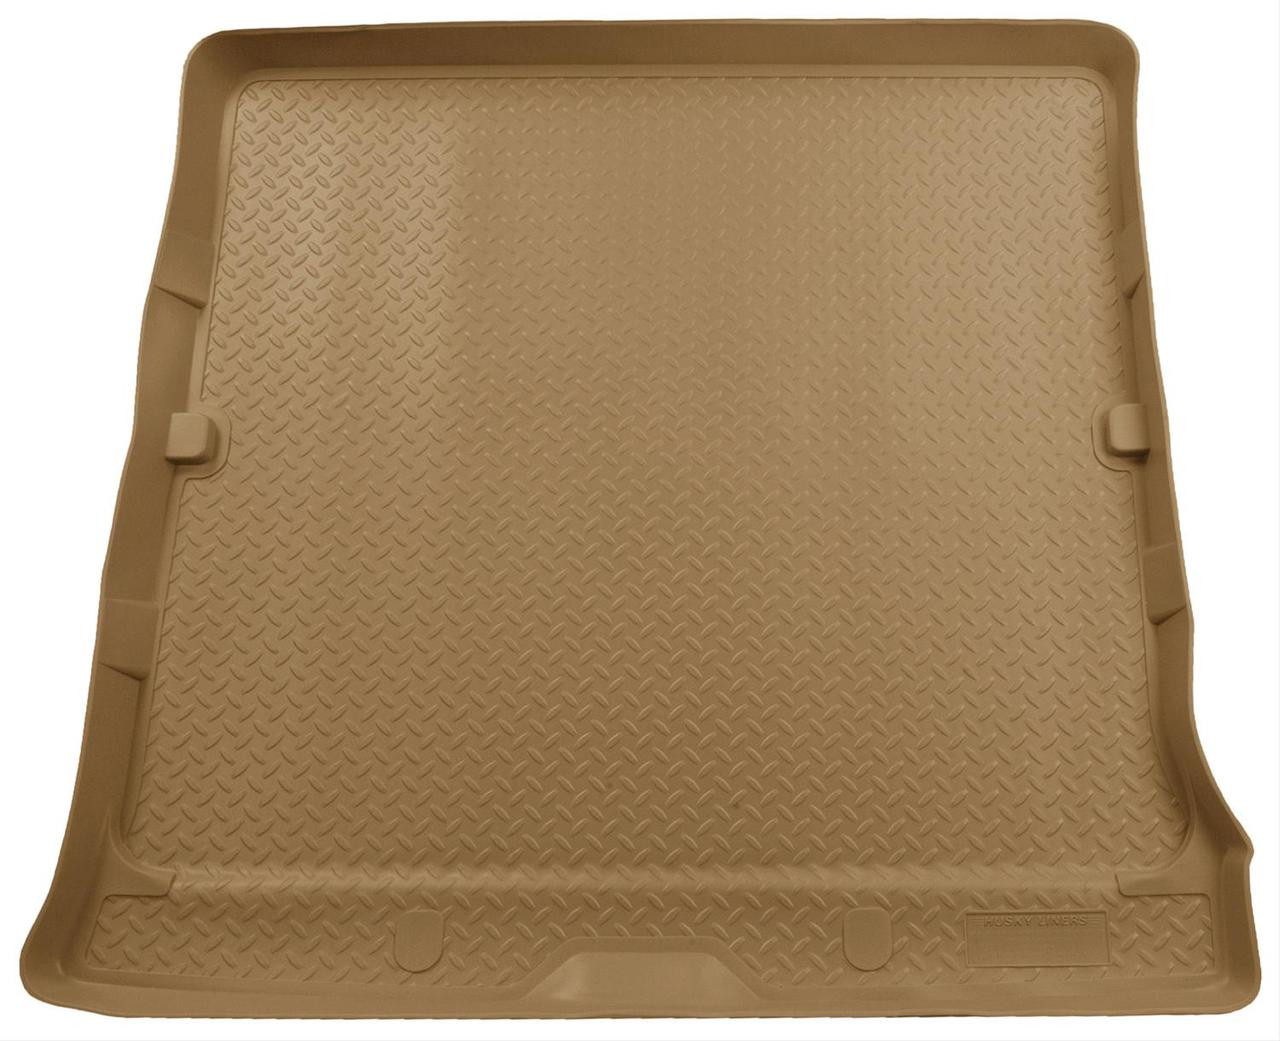 02-10 EXPLORER/MOUNTAINEER/AVIATOR CARGO STORAGE FLOOR LINER TAN